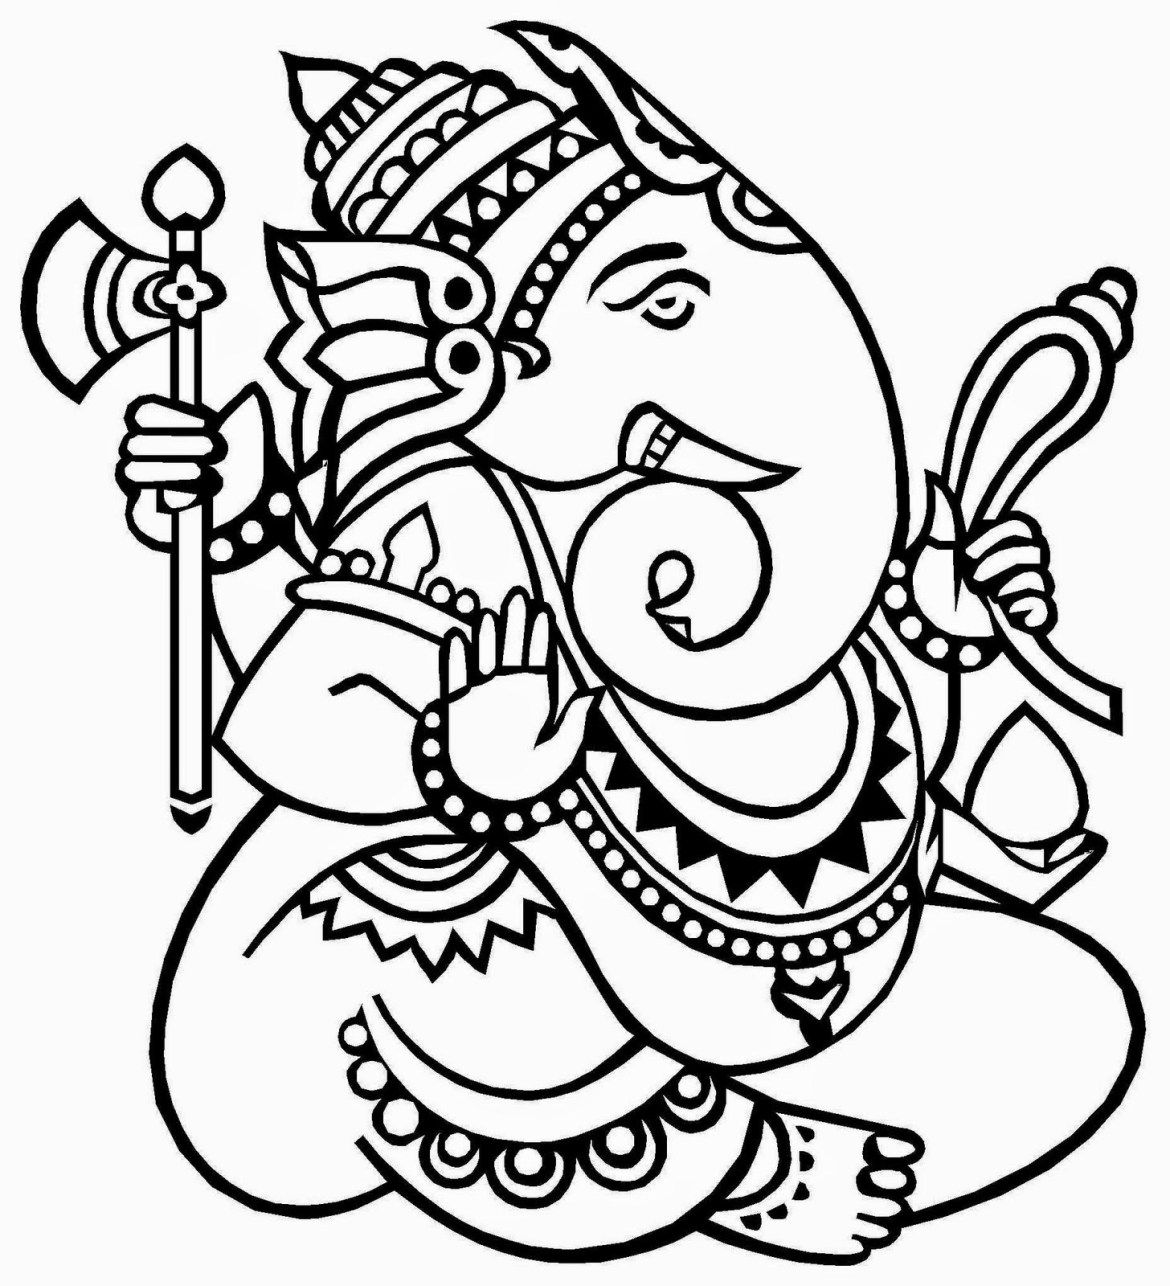 Lord Ganesha Free Coloring Pages For Kids In 2020 Kerala Mural